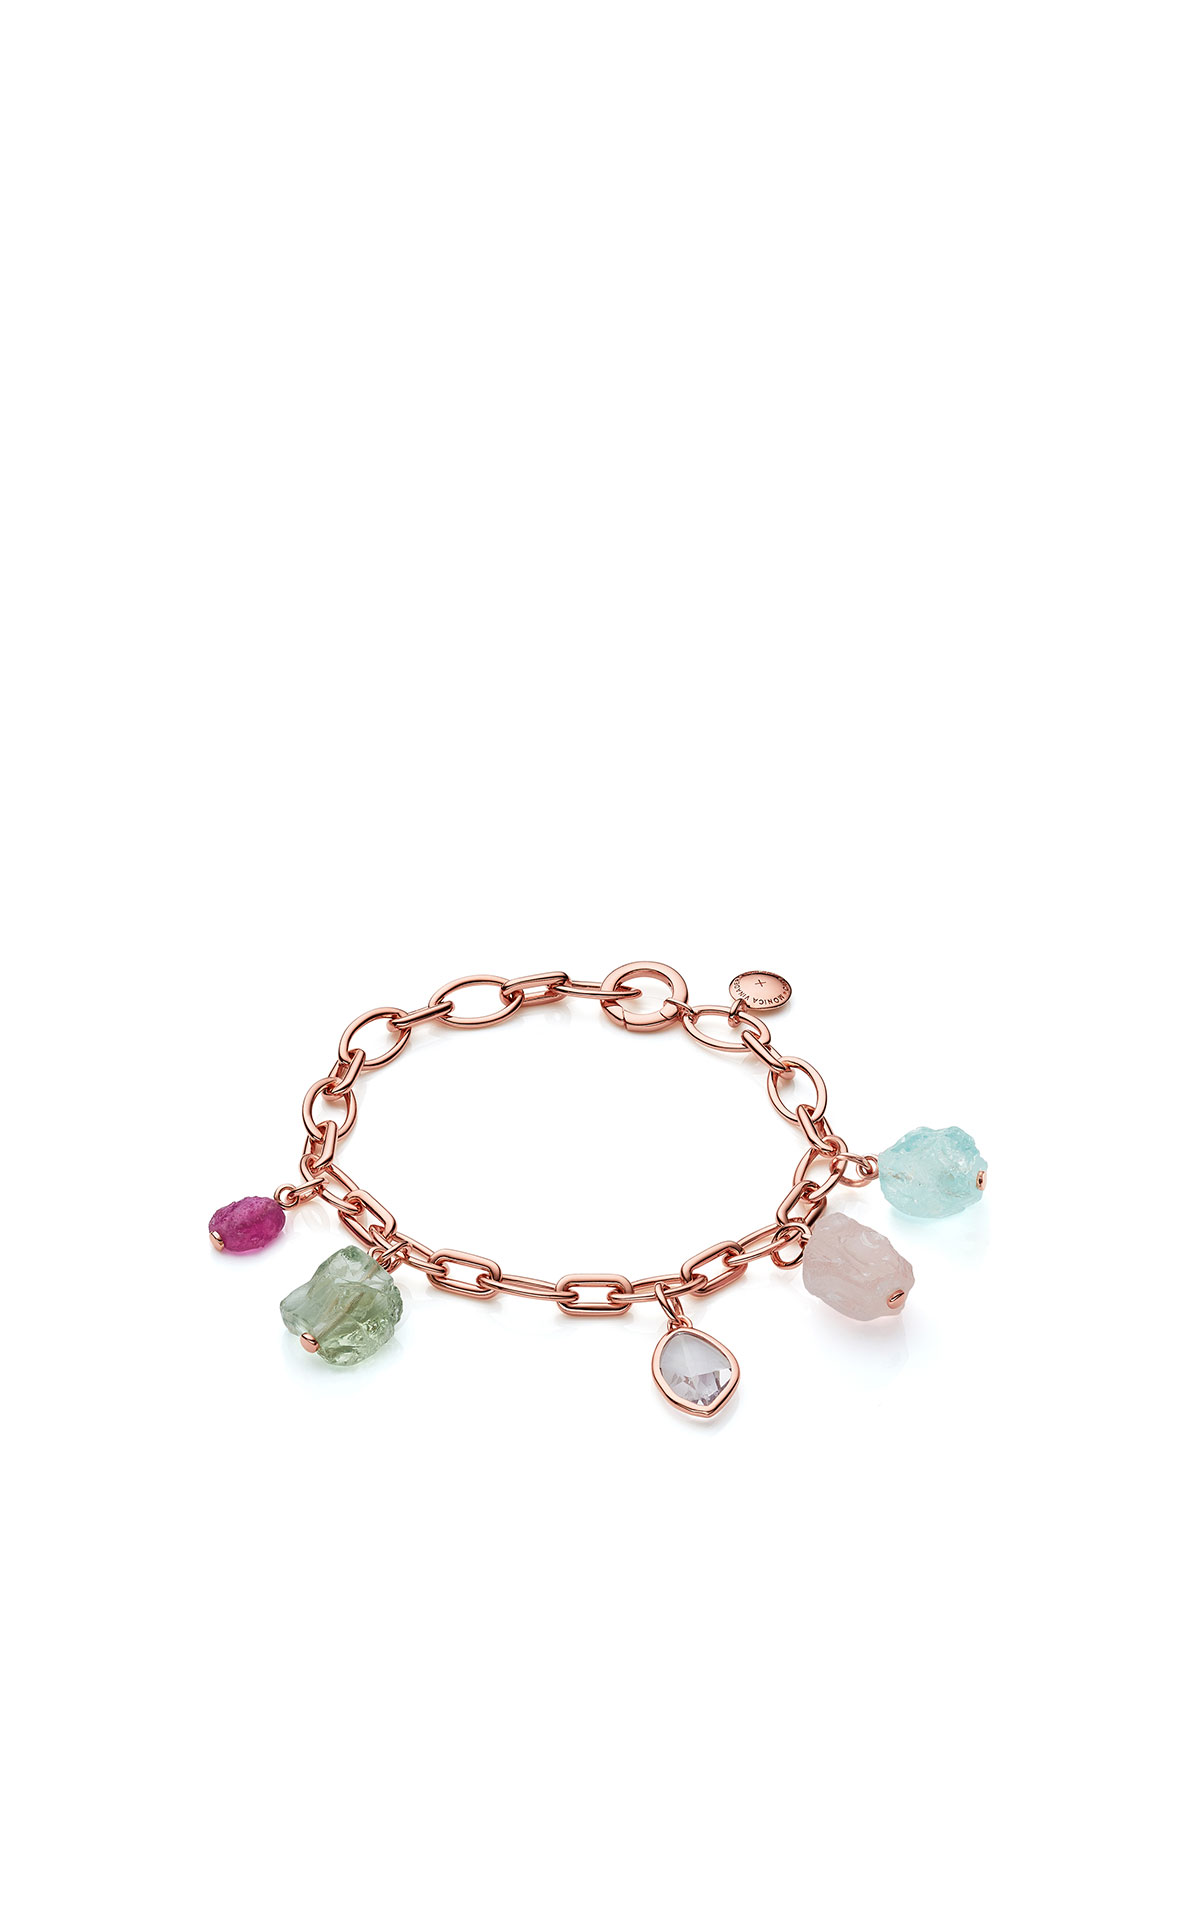 Monica Vinader Rose gold vermeil gemstone bracelet - mix from Bicester Village